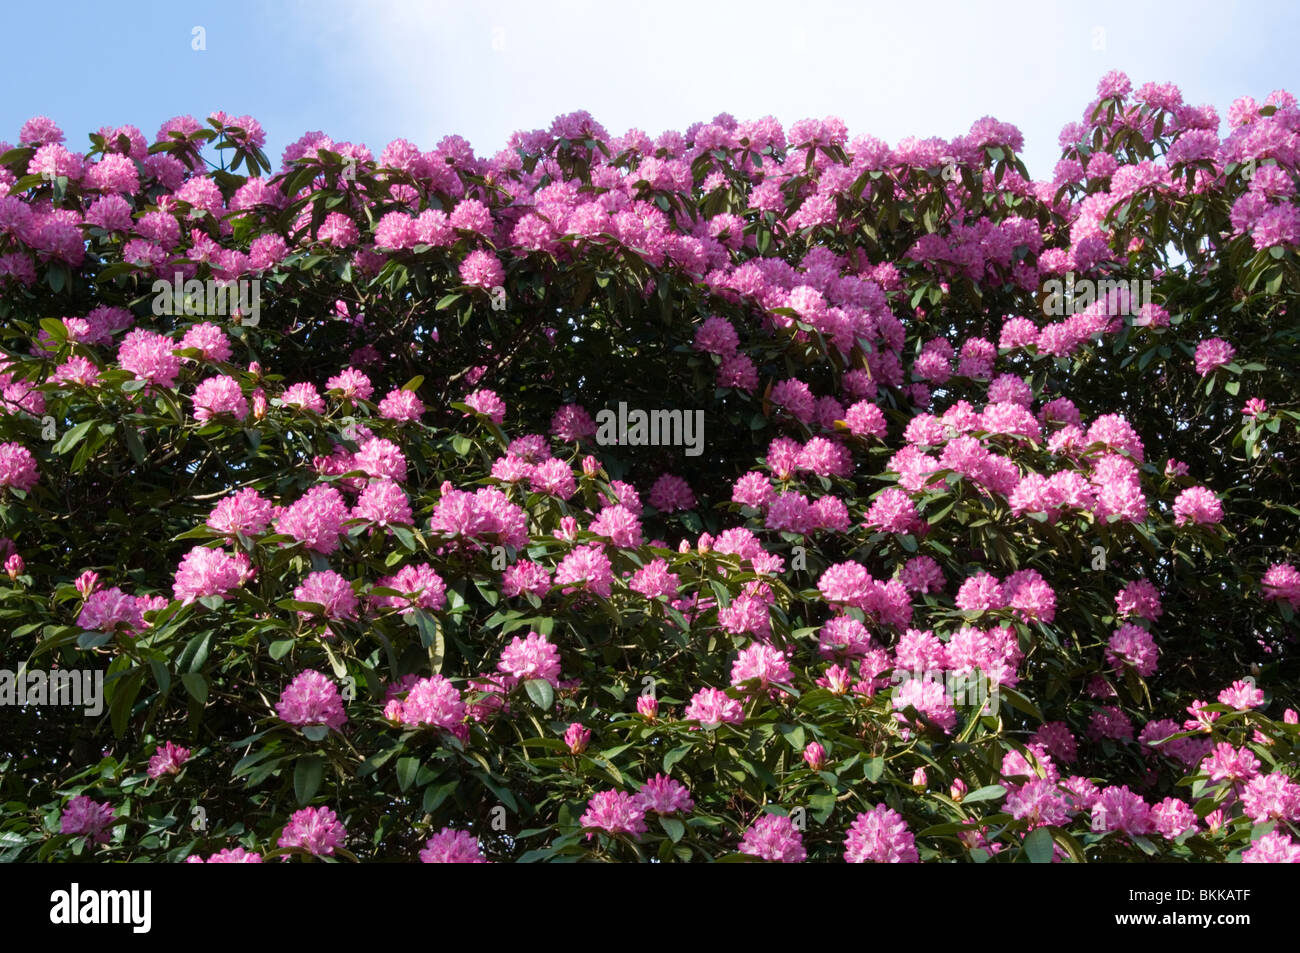 Rhododendron bush in flower - Stock Image